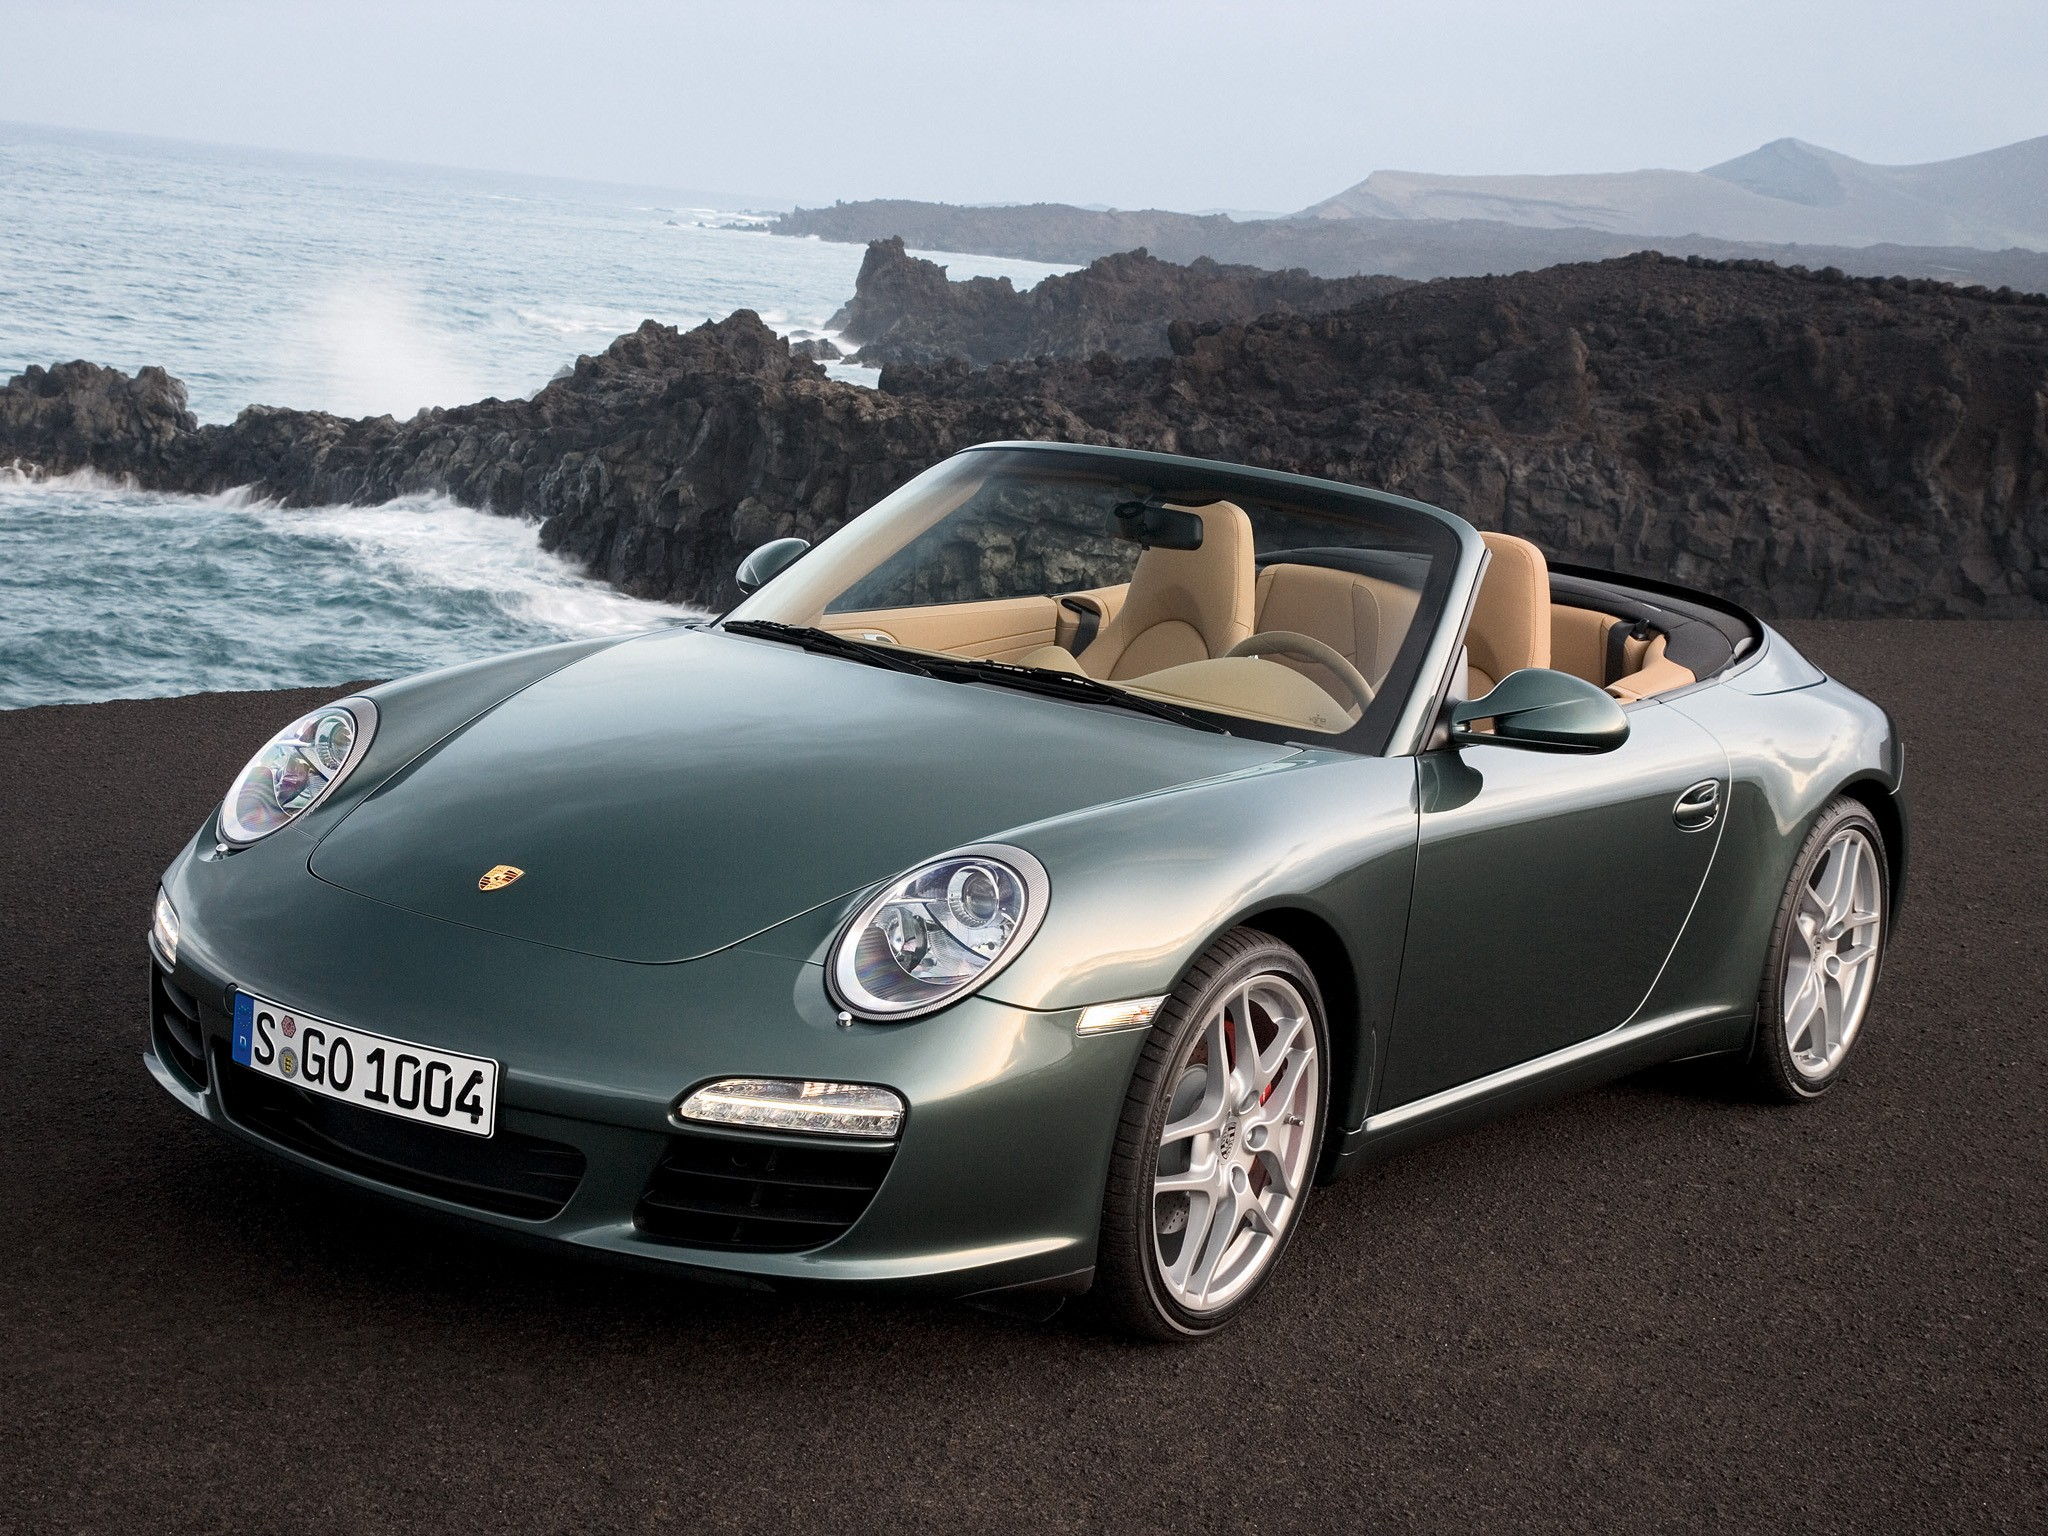 porsche 911 carrera s cabriolet 997 specs 2008 2009 2010 2011 autoevolution. Black Bedroom Furniture Sets. Home Design Ideas